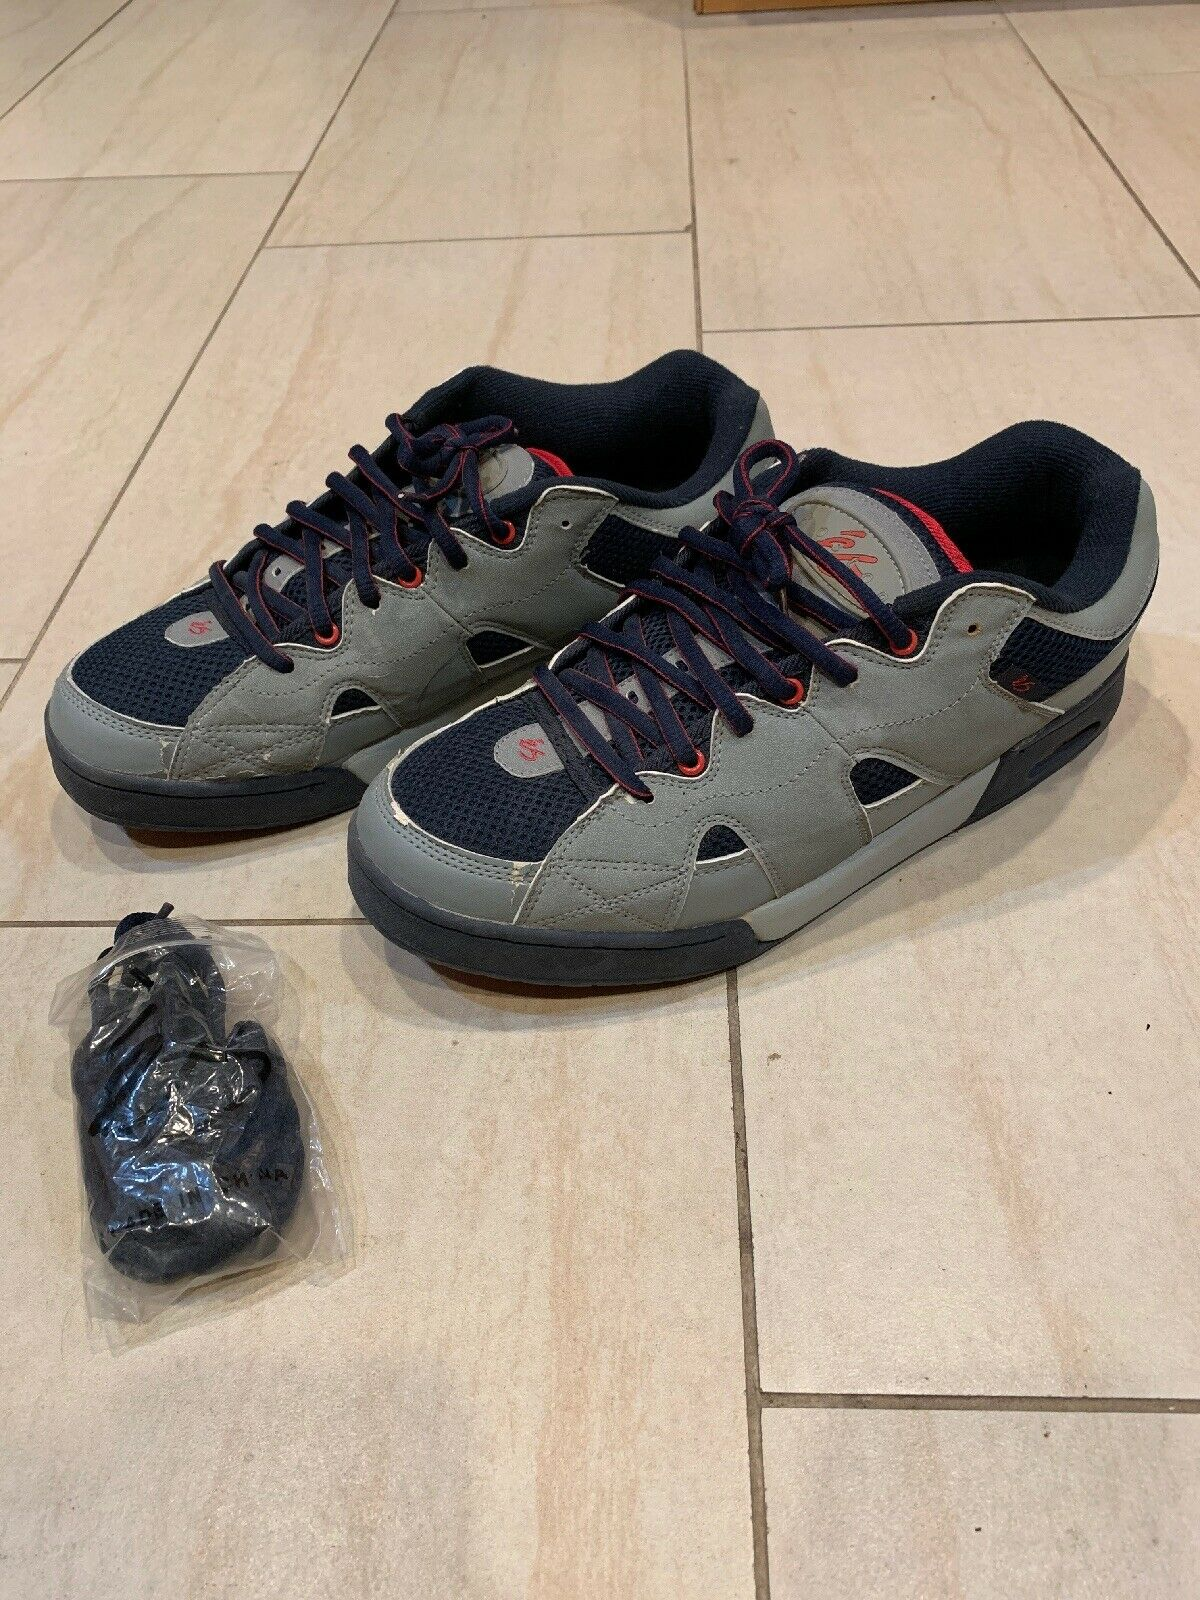 ÉS eS Eric Koston 1 One Dimensione 11 grigio Navy rosso Original Release With Air Bubble